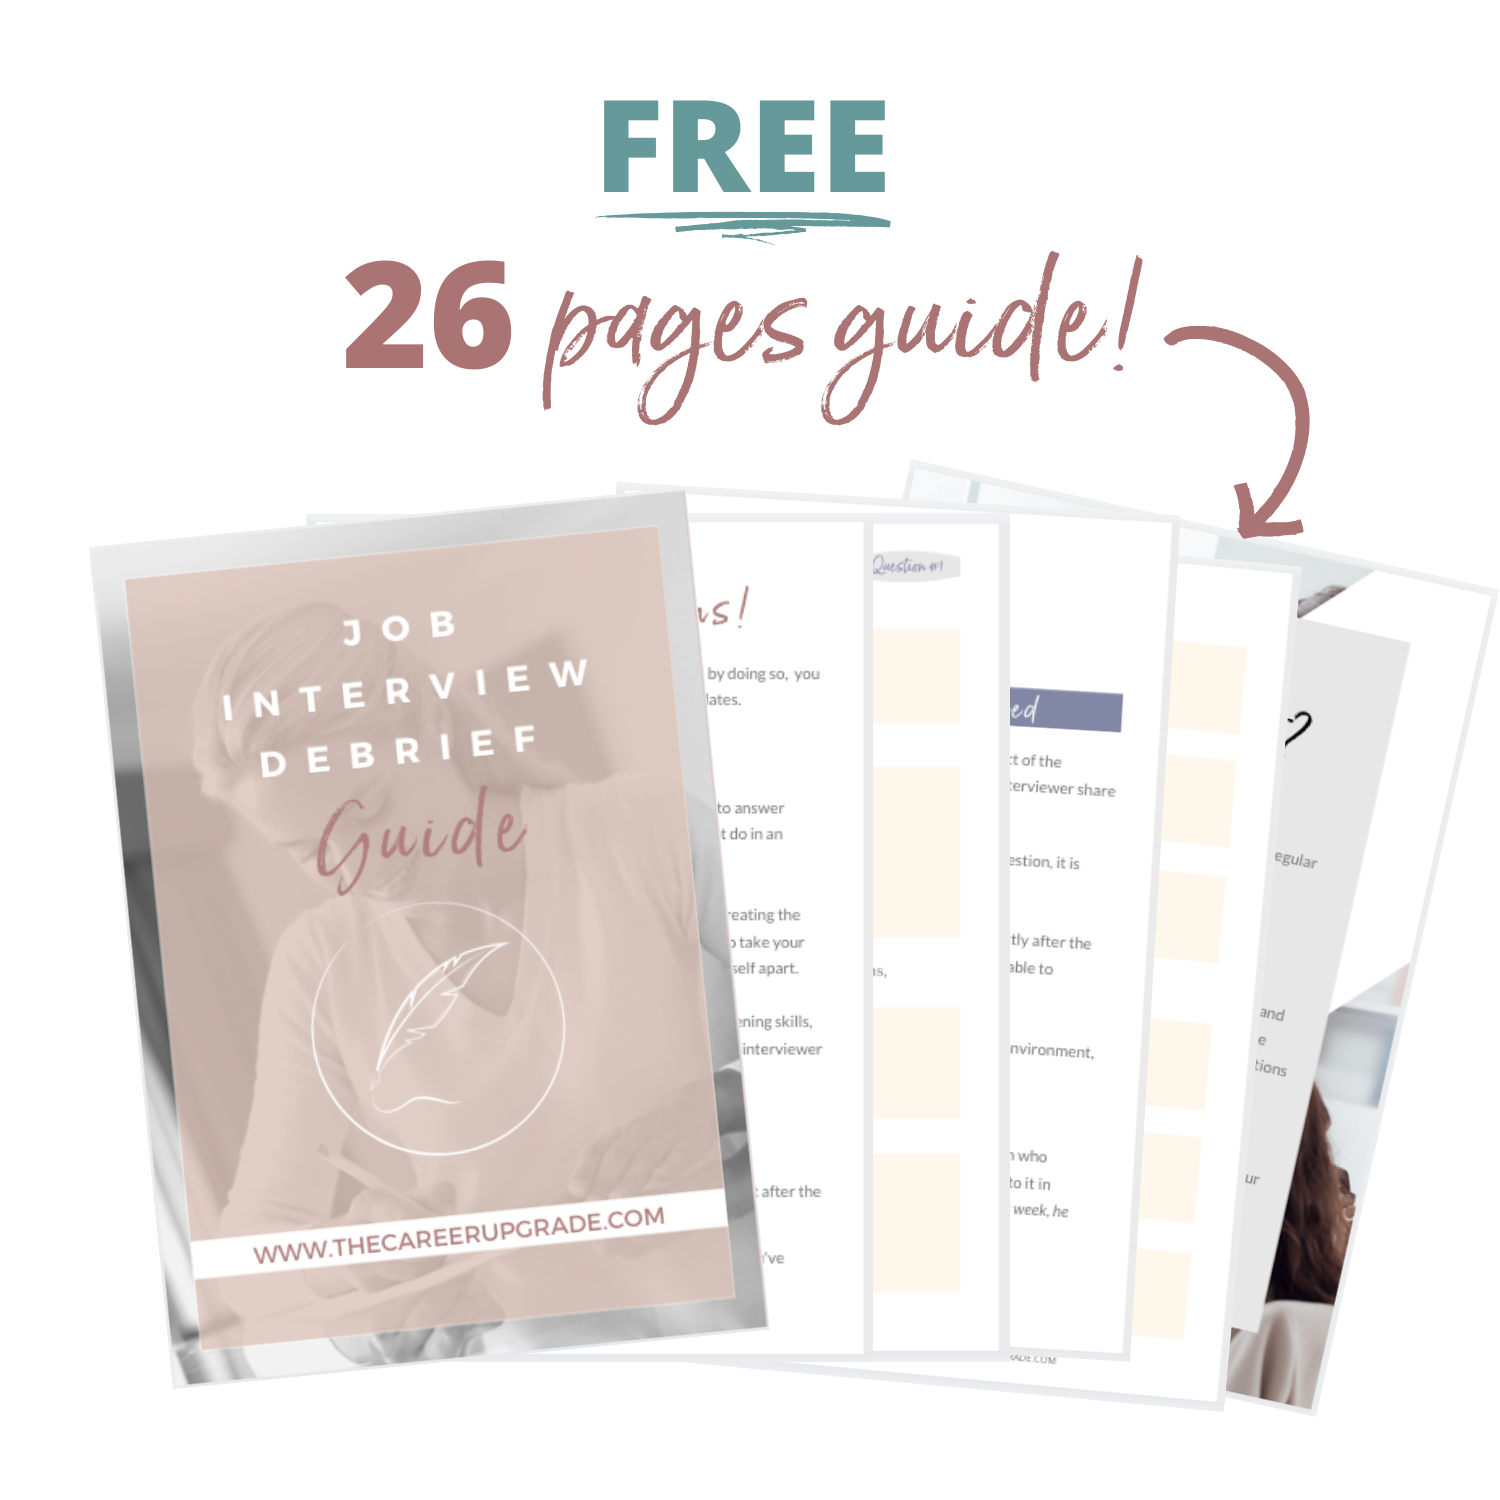 Copy of Copy of Free 26 page guide The Career Upgrade